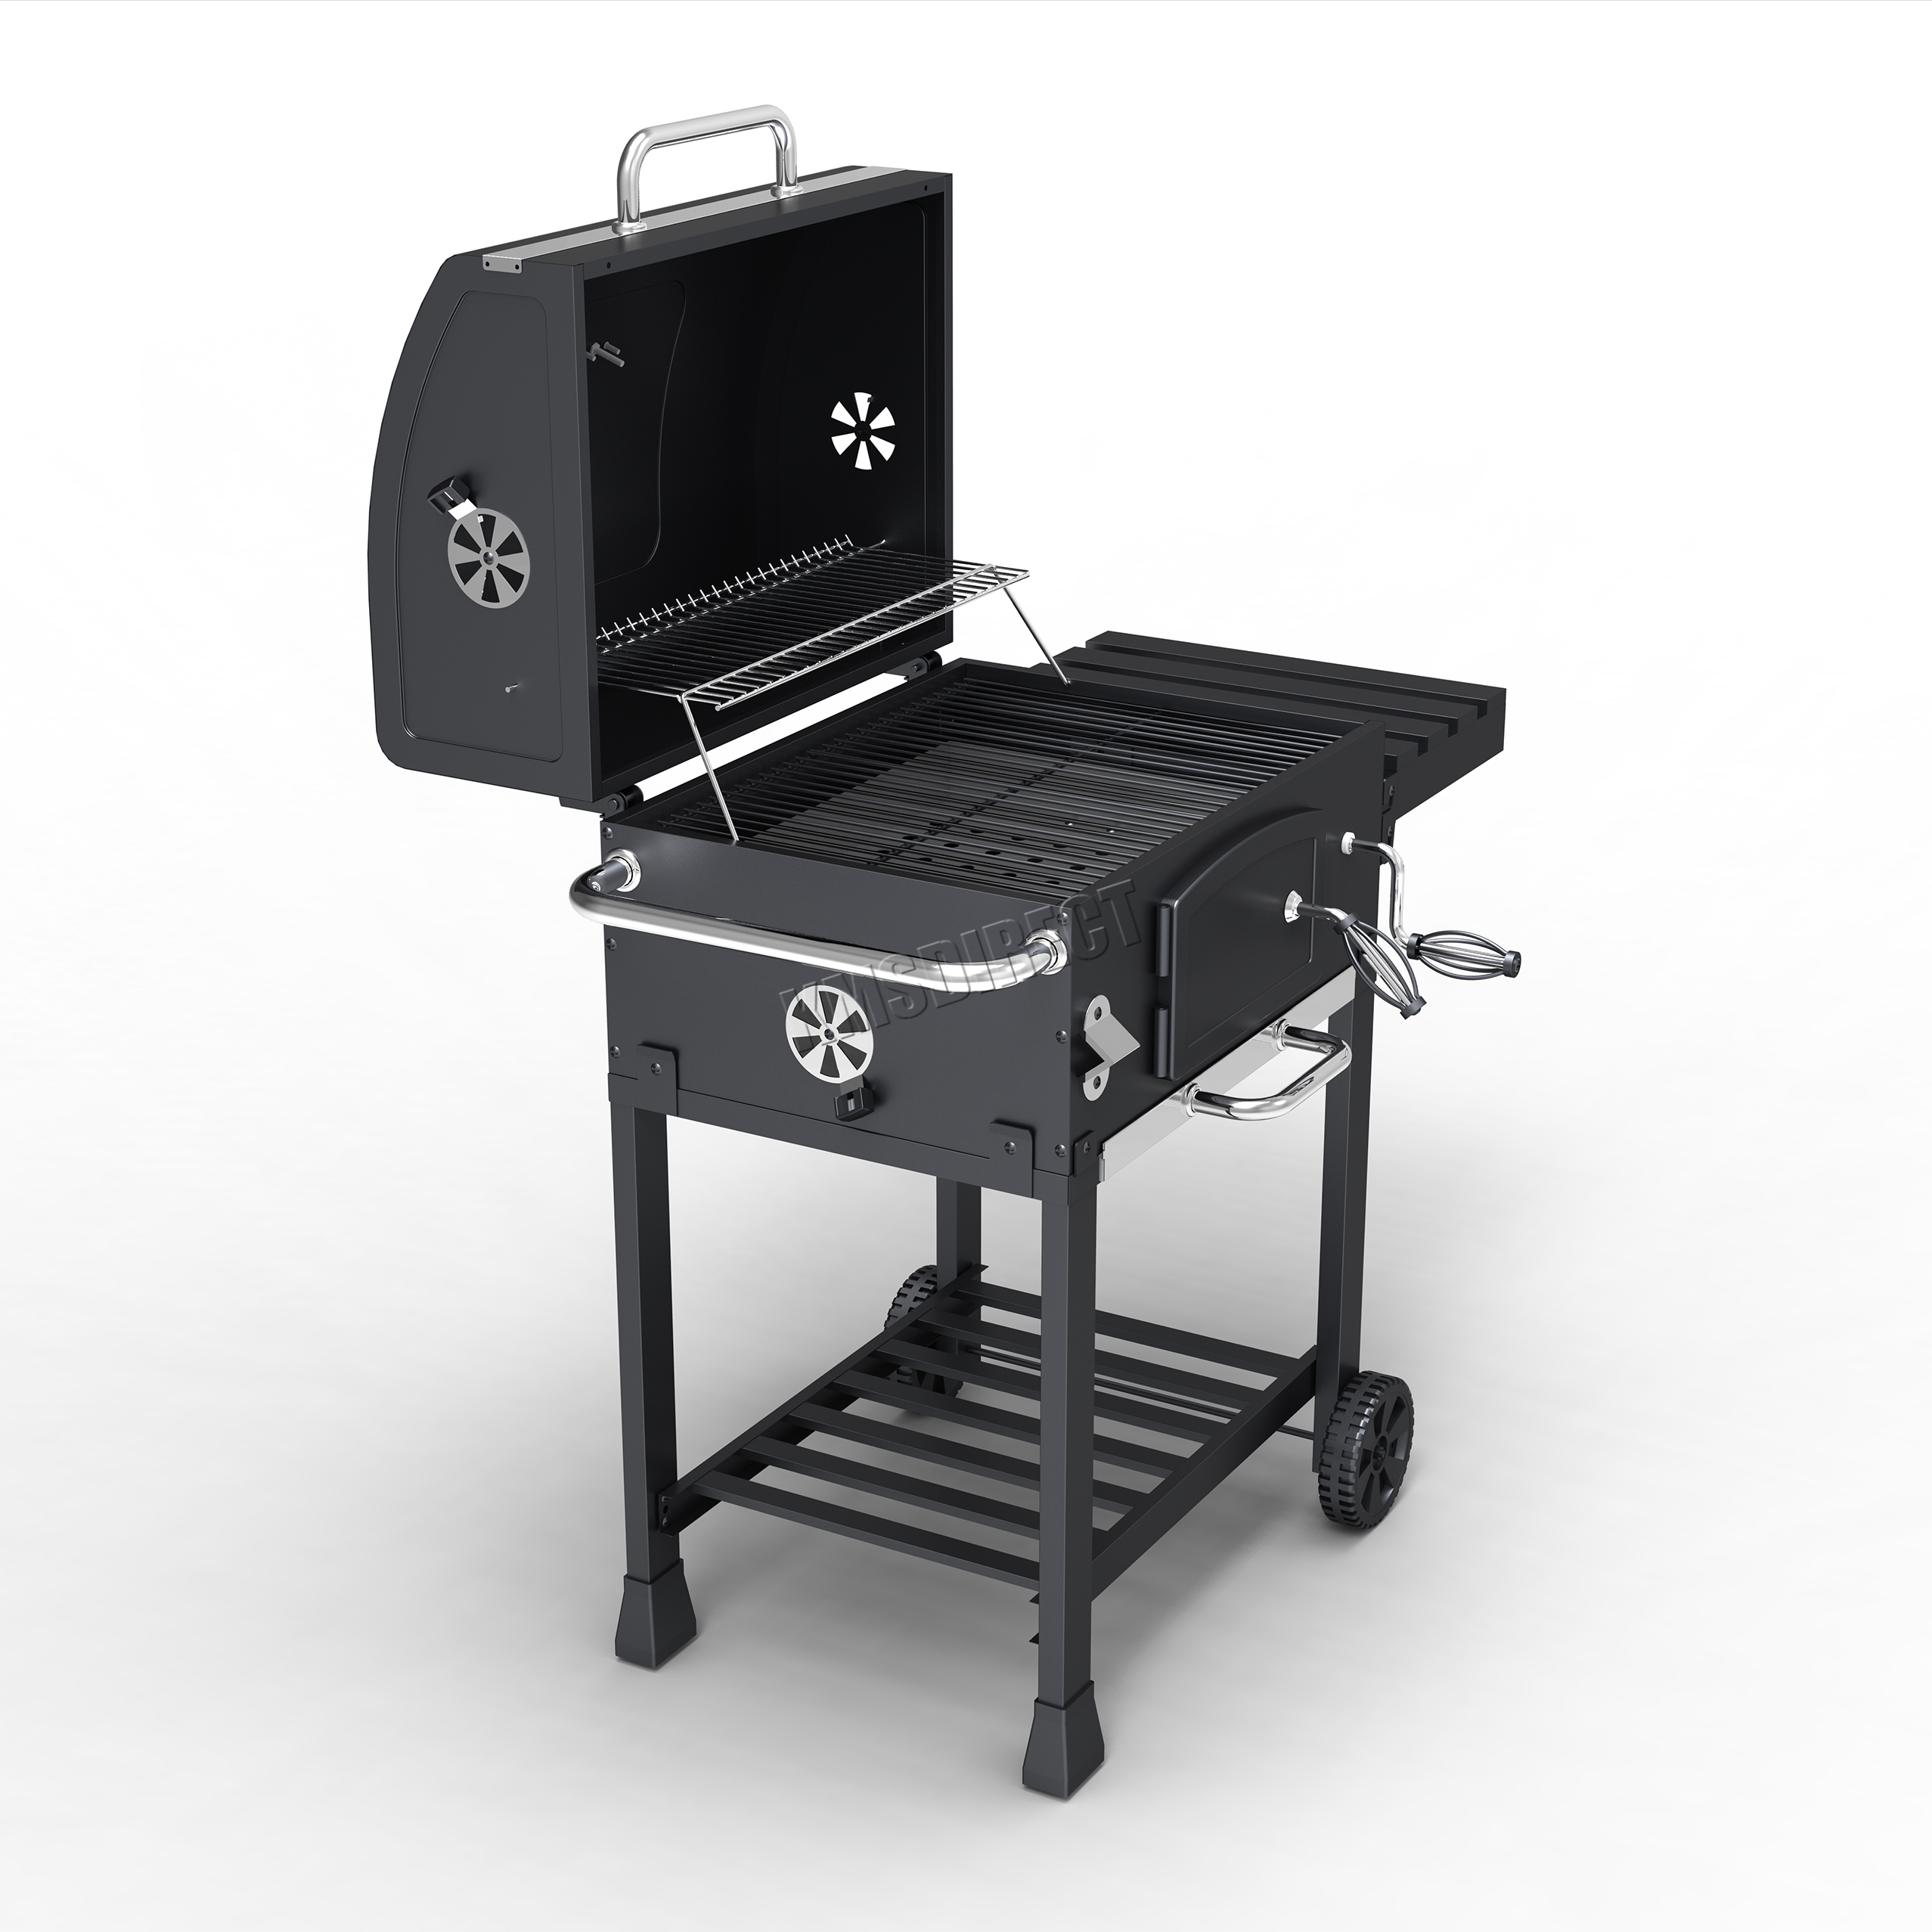 FoxHunter Charcoal BBQ Grill Barbecue Smoker Grate Garden ...